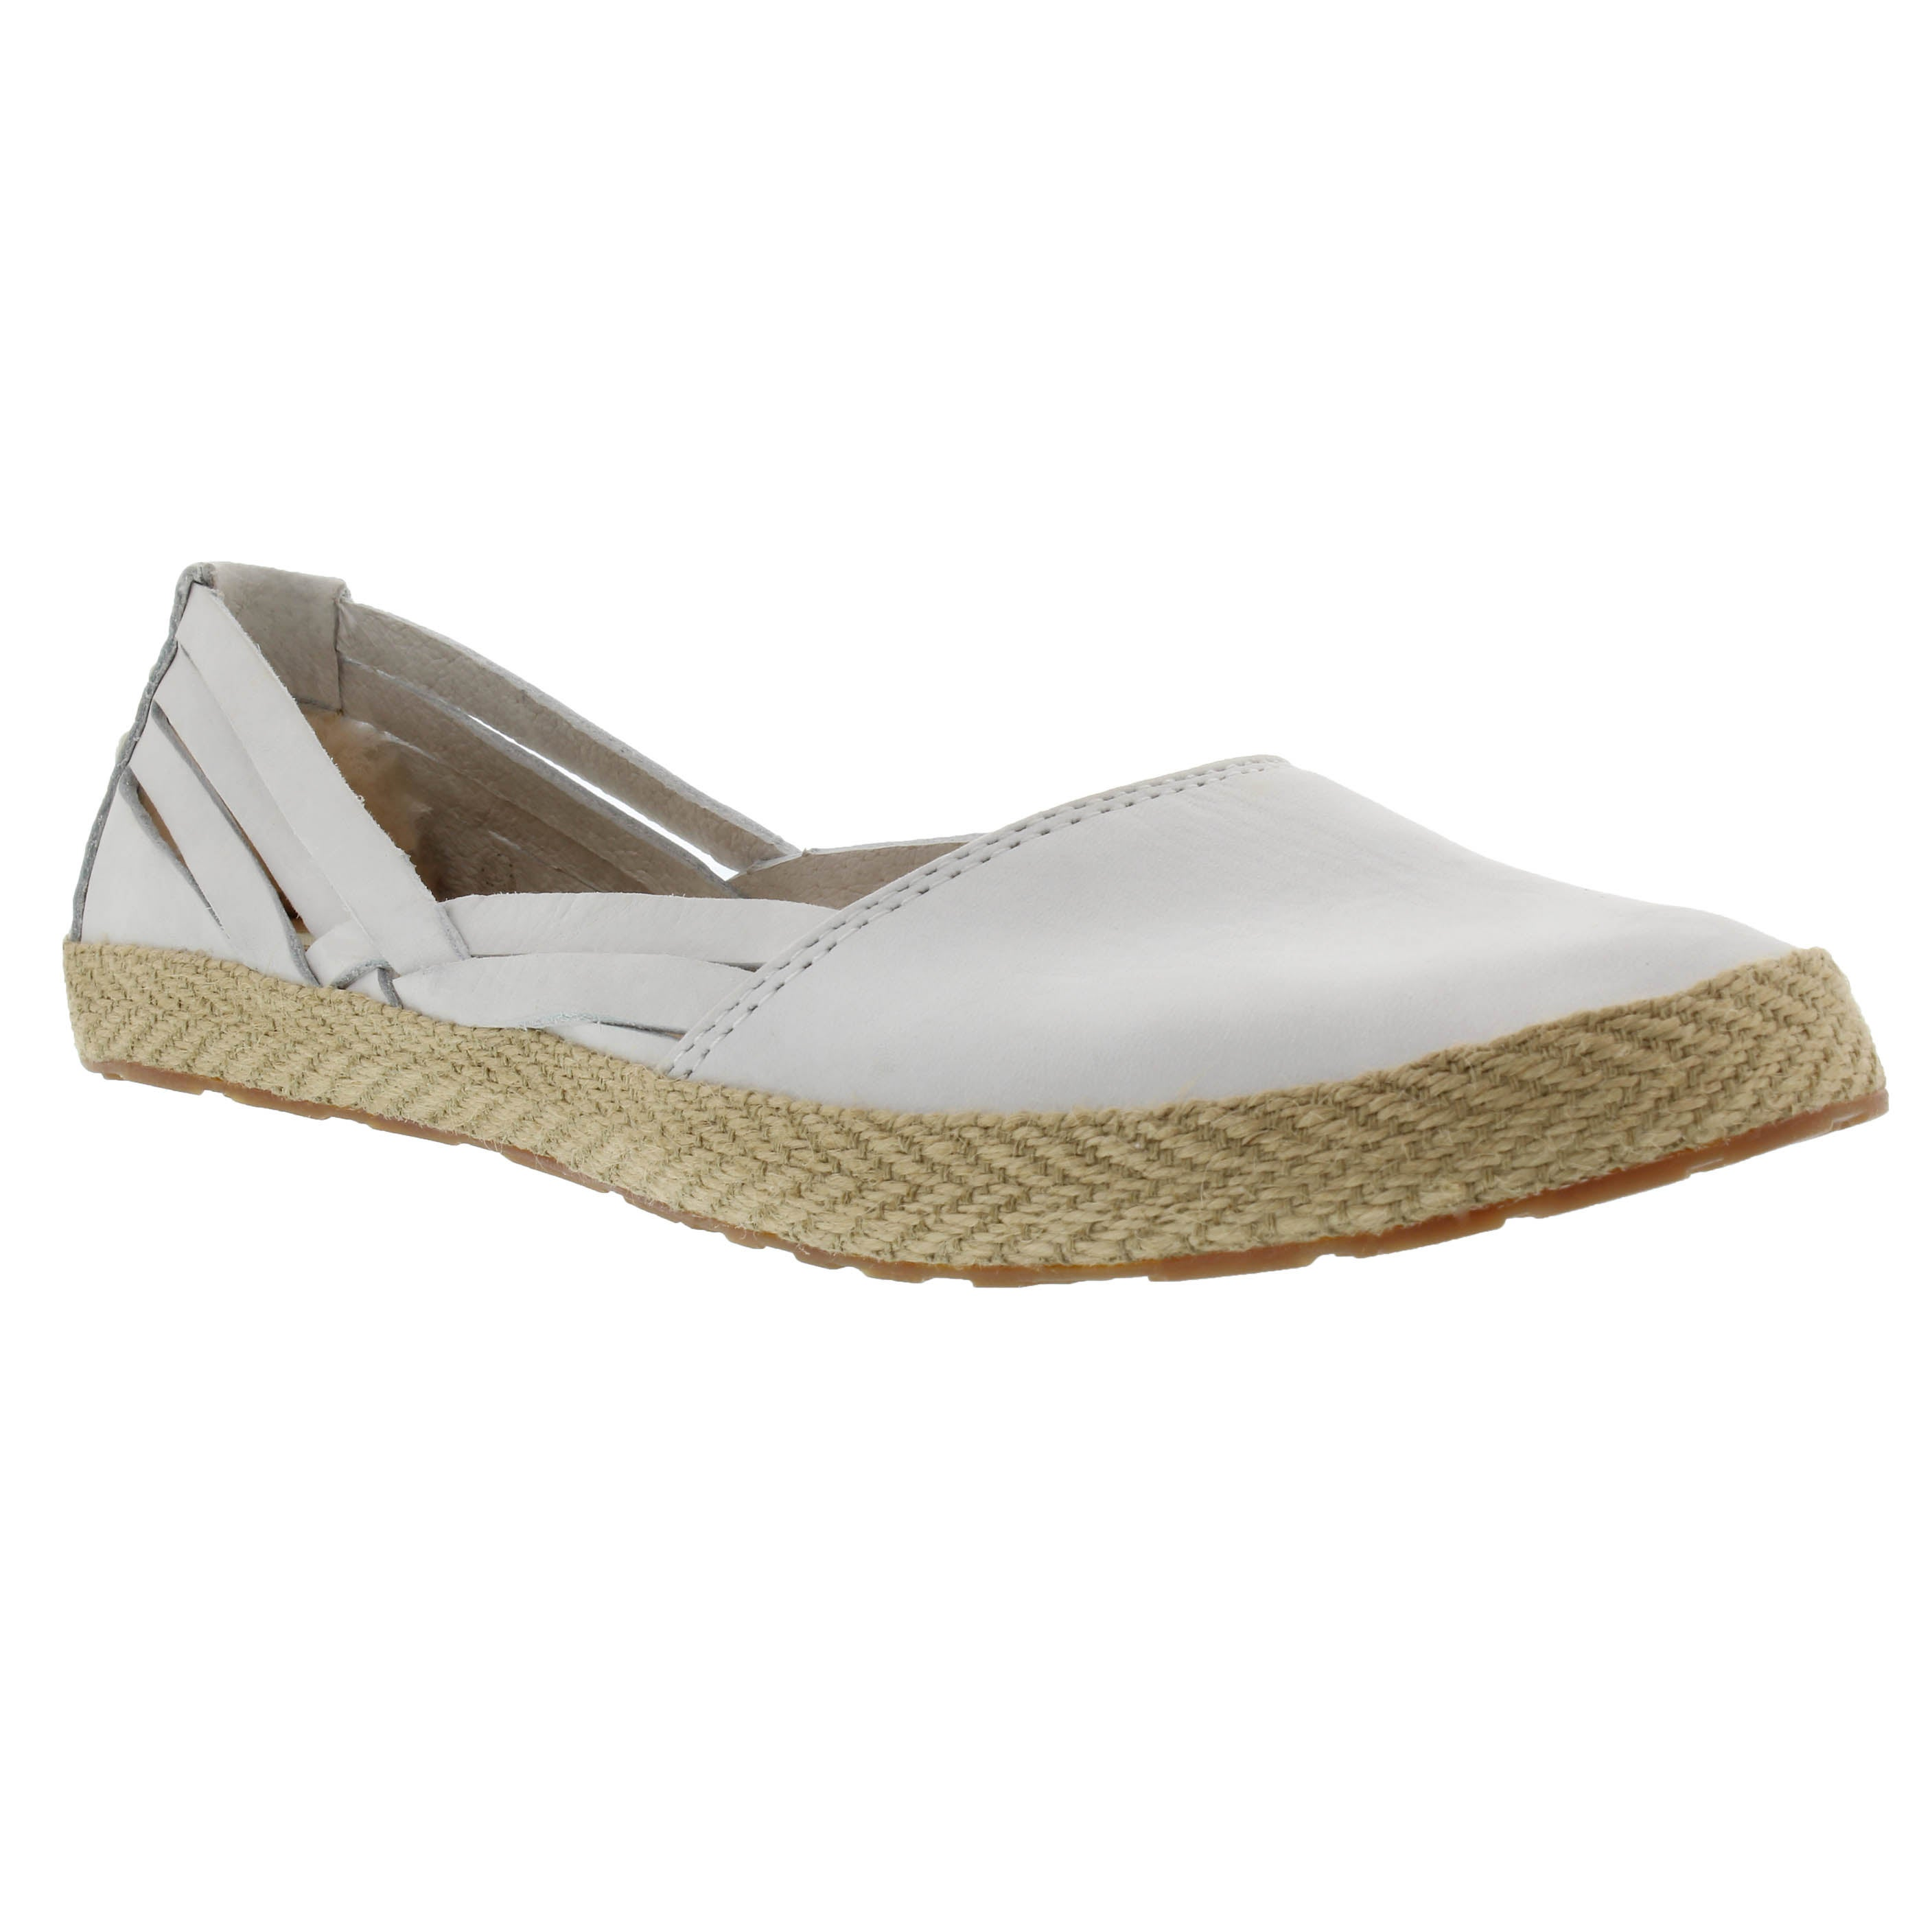 Lds Cicily seagull slip on flat